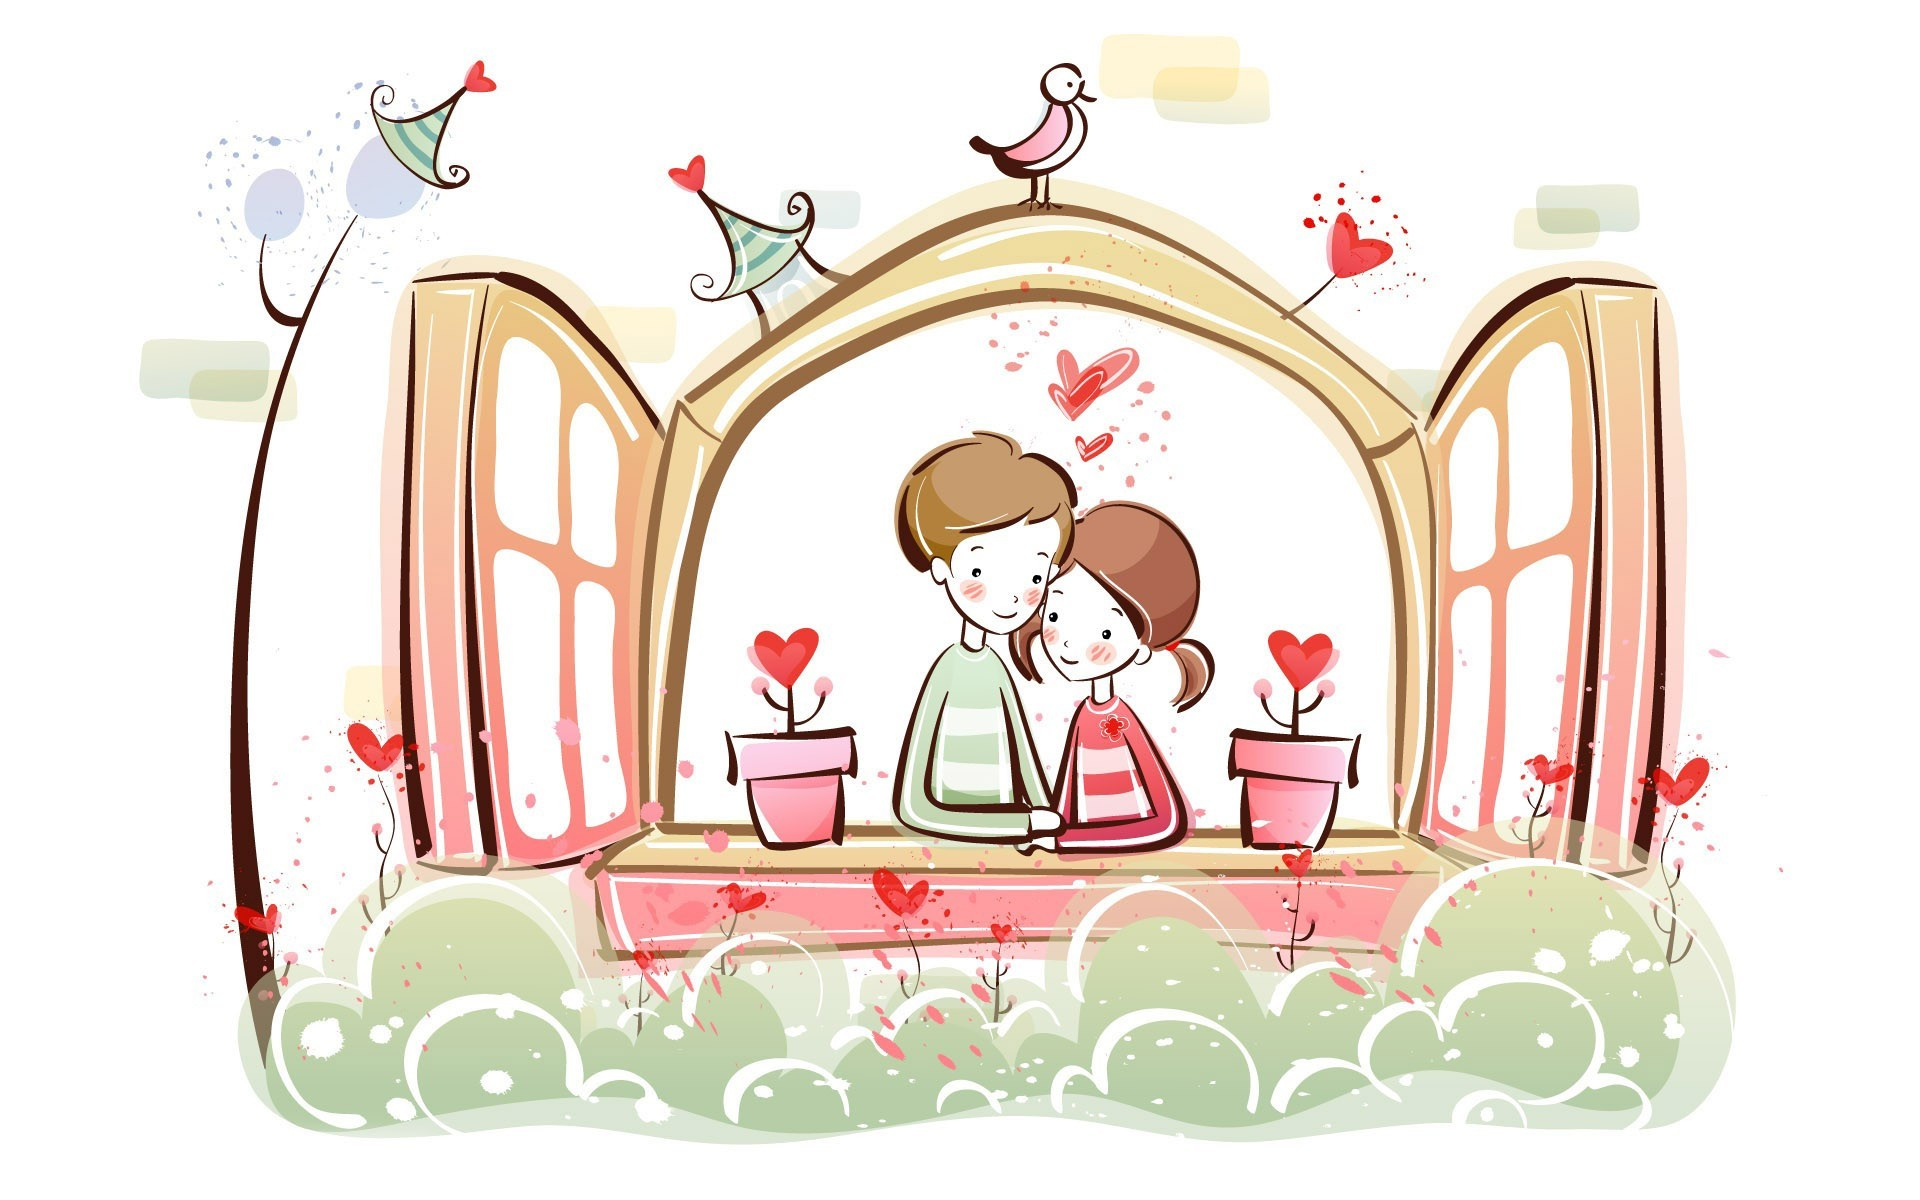 Love U cartoon Wallpaper : cartoon Love Wallpaper - Wallpaper, High Definition, High Quality, Widescreen